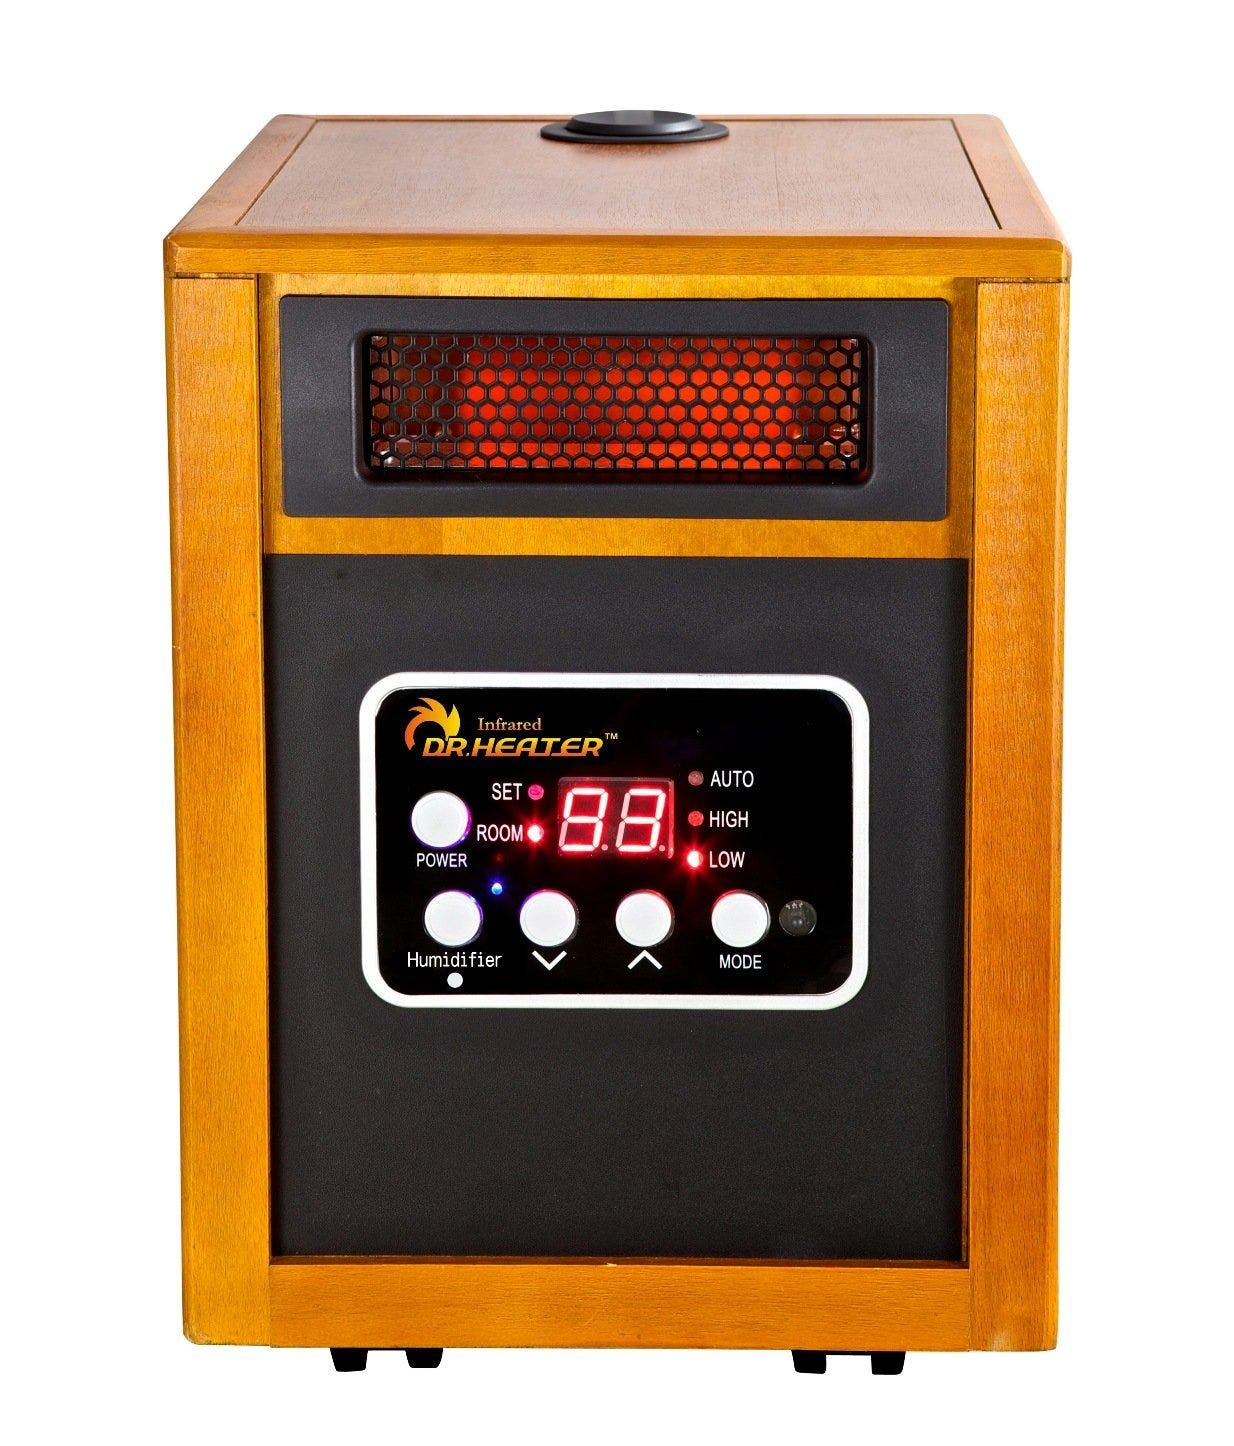 Best Space Heater For Whole Rooms: Dr. Infrared Heater ($118)